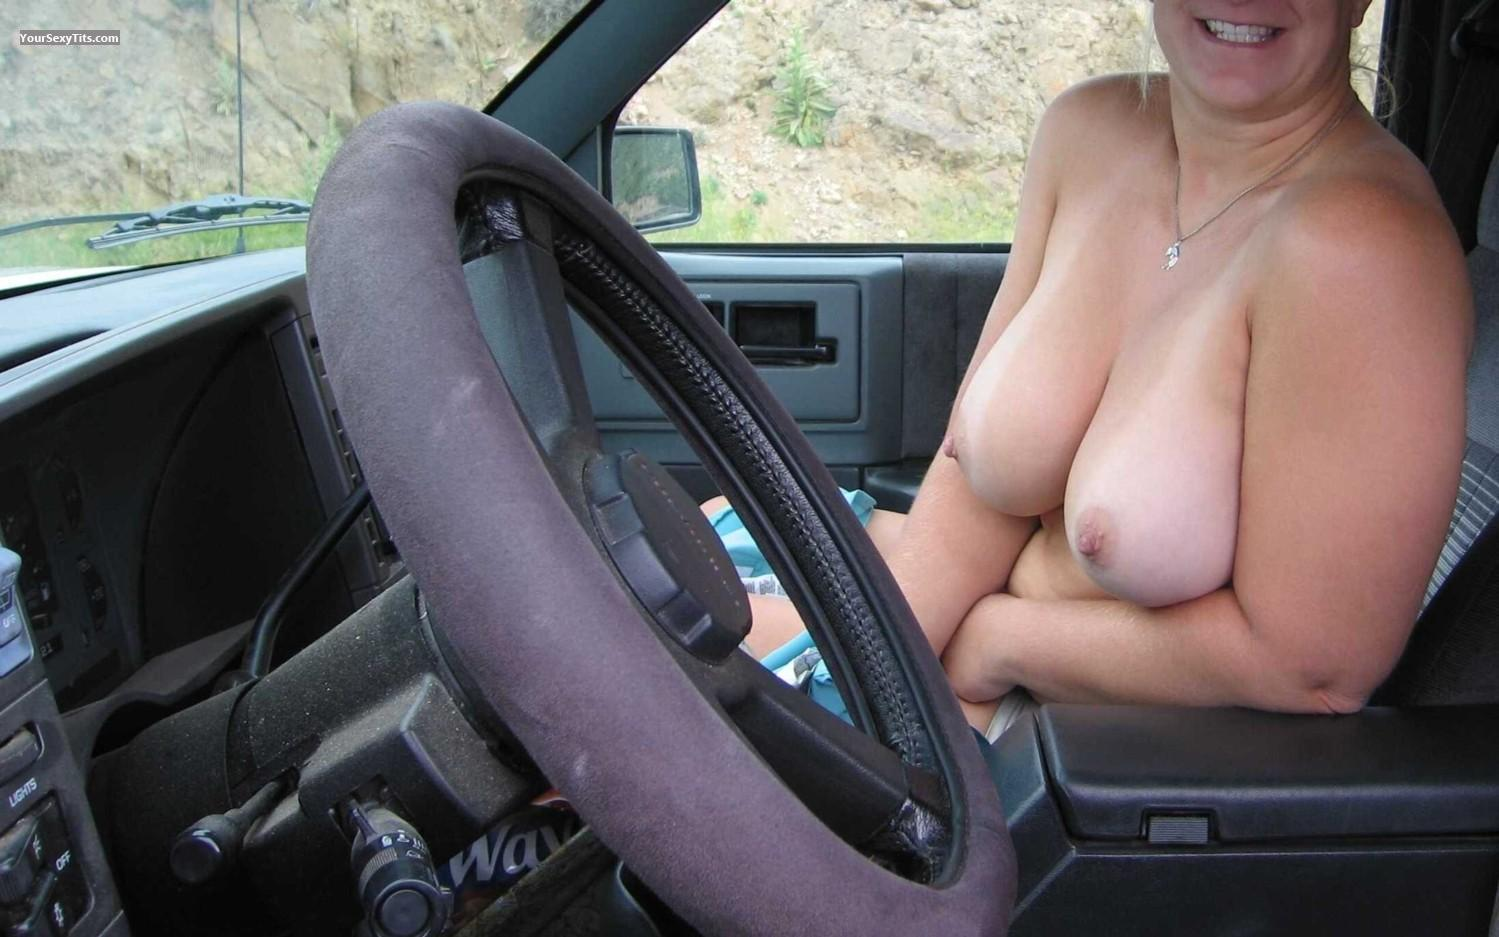 Boob flash on highway